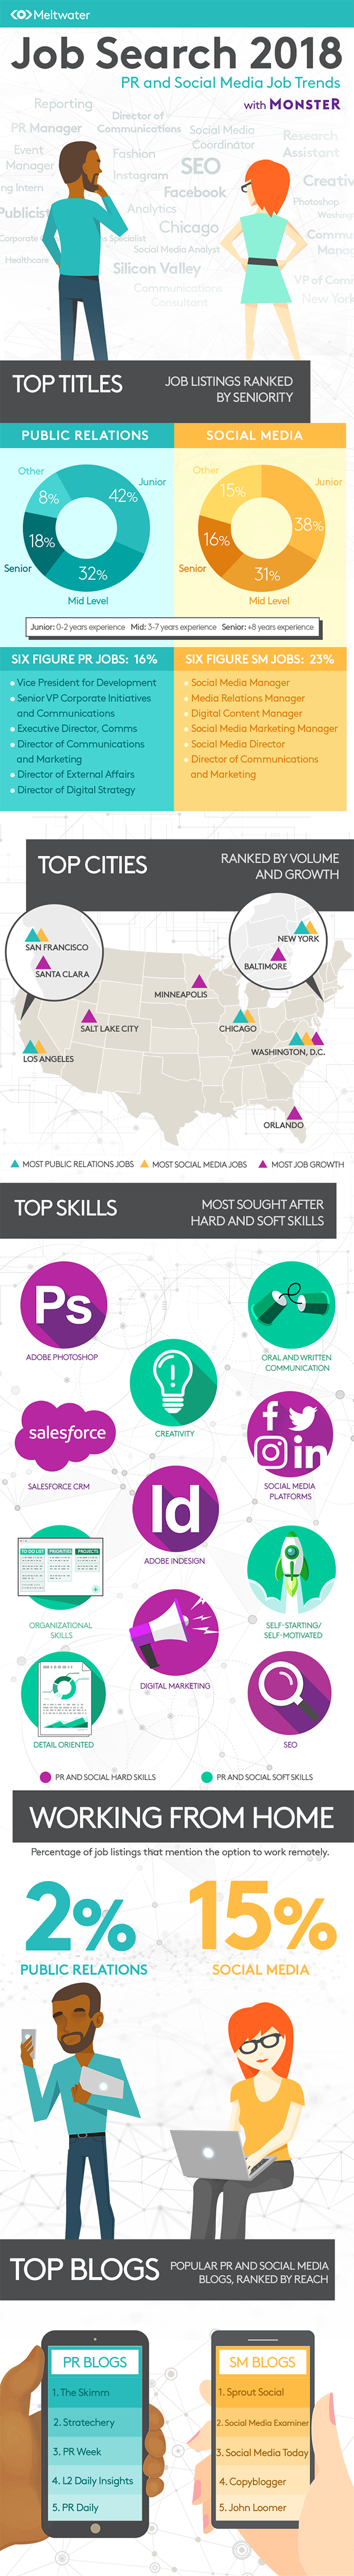 What is the current state of PR and social media jobs? - #infographic